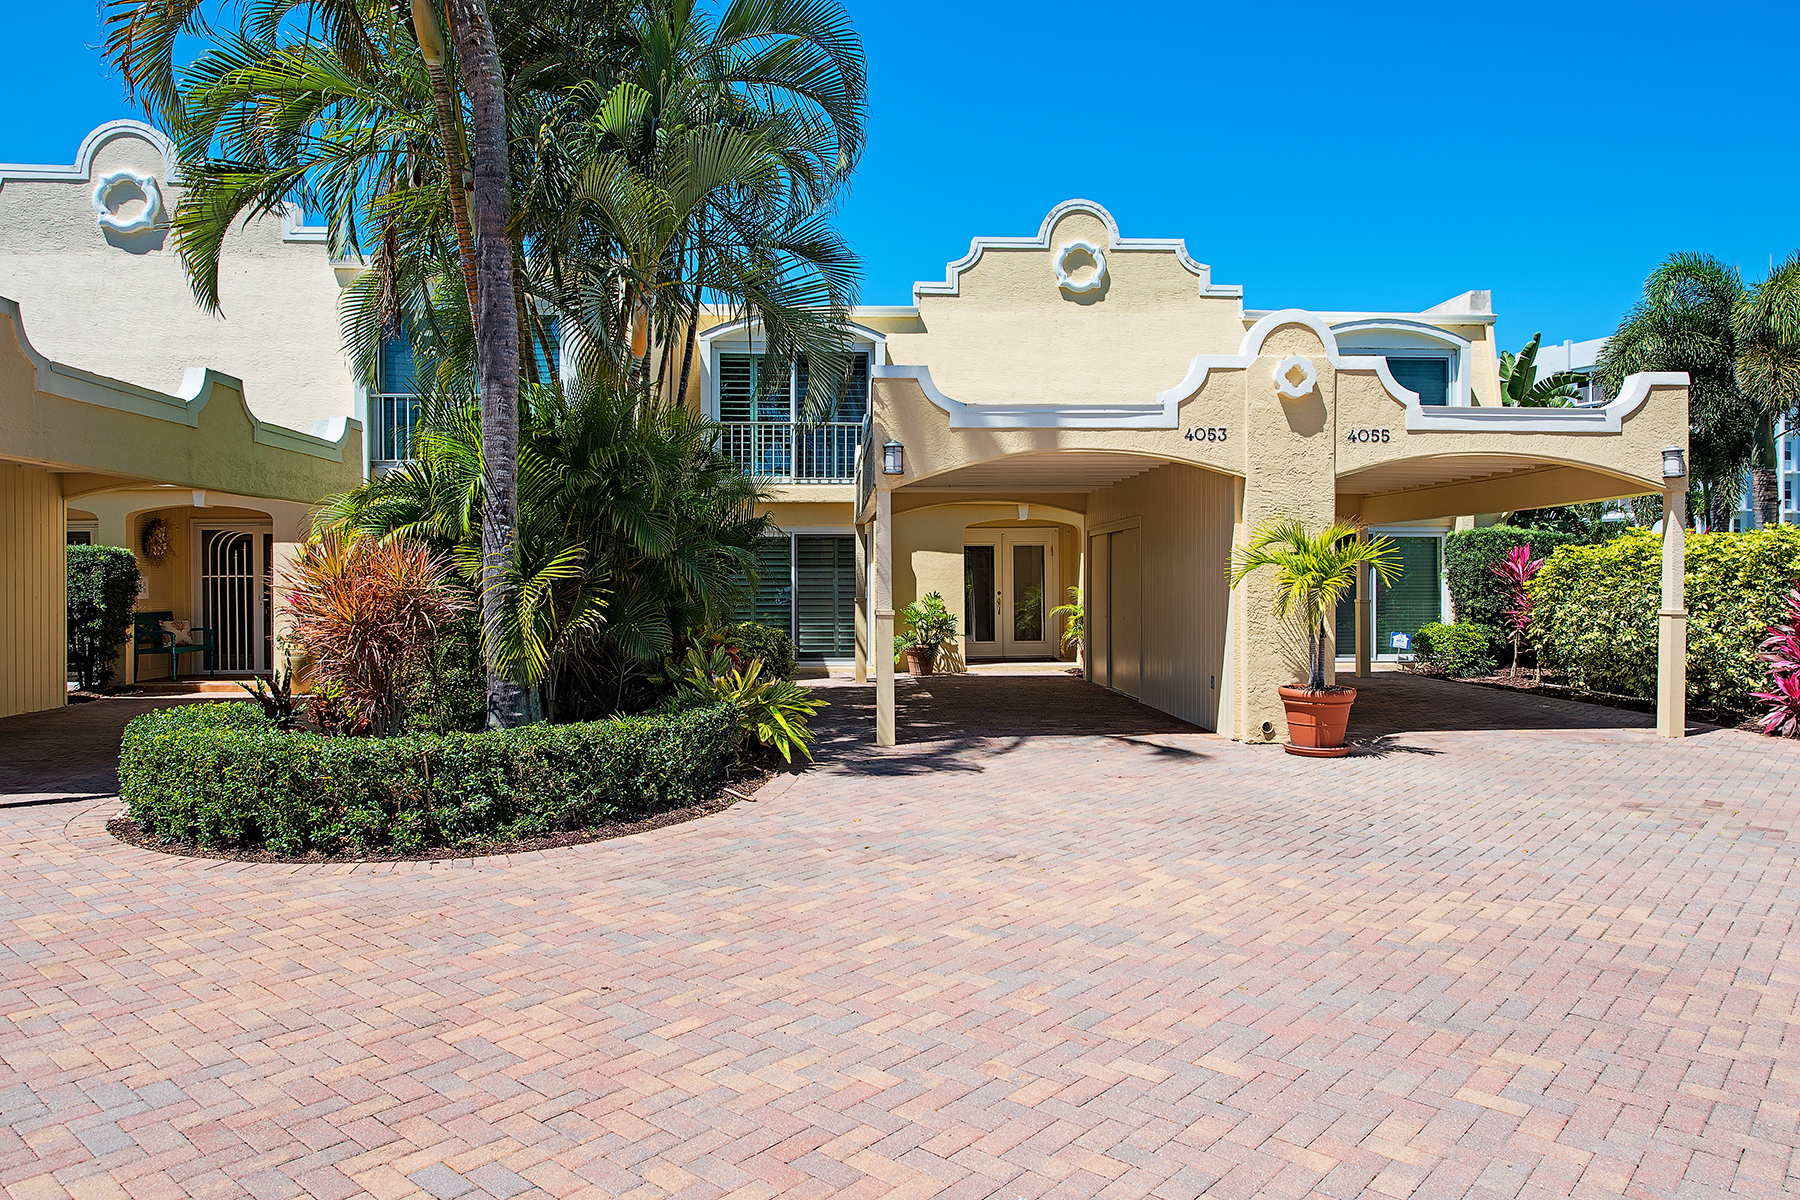 Townhouse for Sale at PARK SHORE - COLONY GARDENS 4053 Crayton Rd 4O53 Naples, Florida, 34103 United States